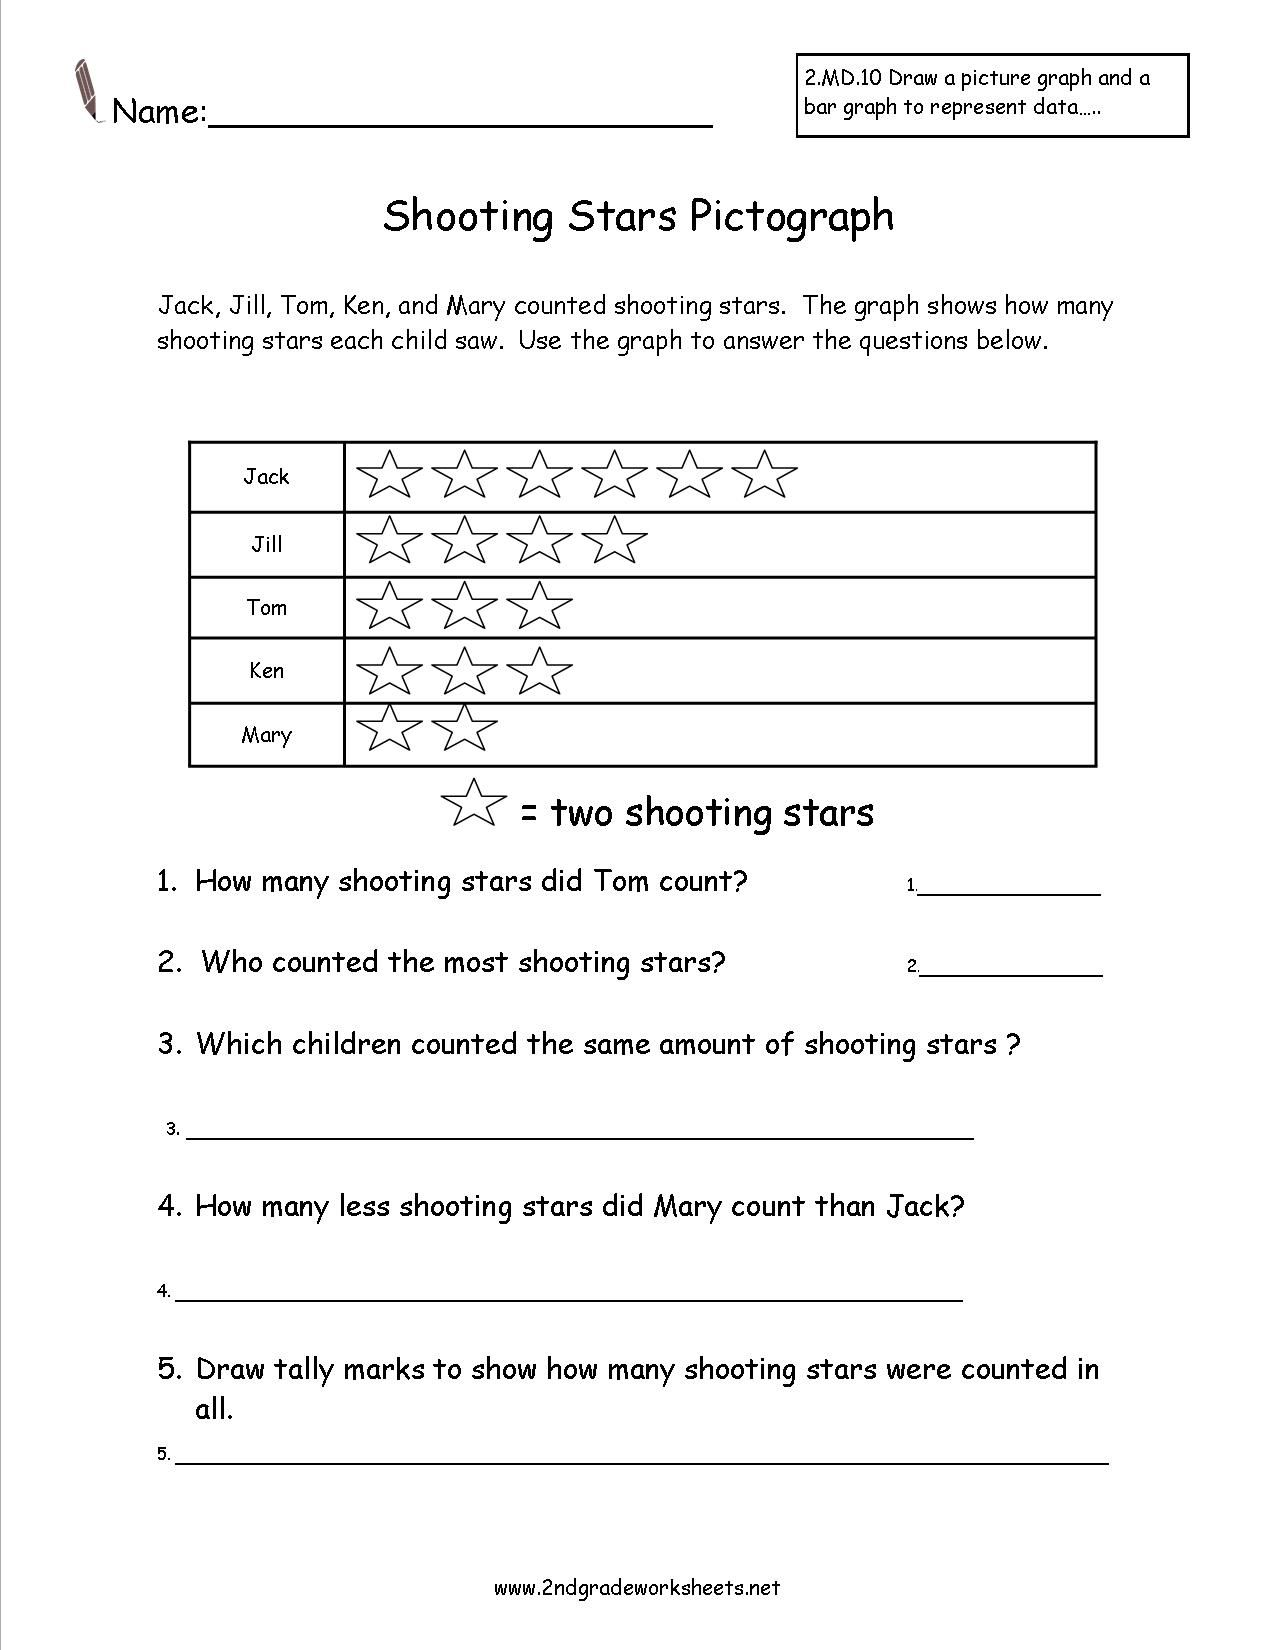 Shooting Stars Pictograph Worksheet Third Grade Worksheets 2nd Grade Worksheets Phonics Worksheets